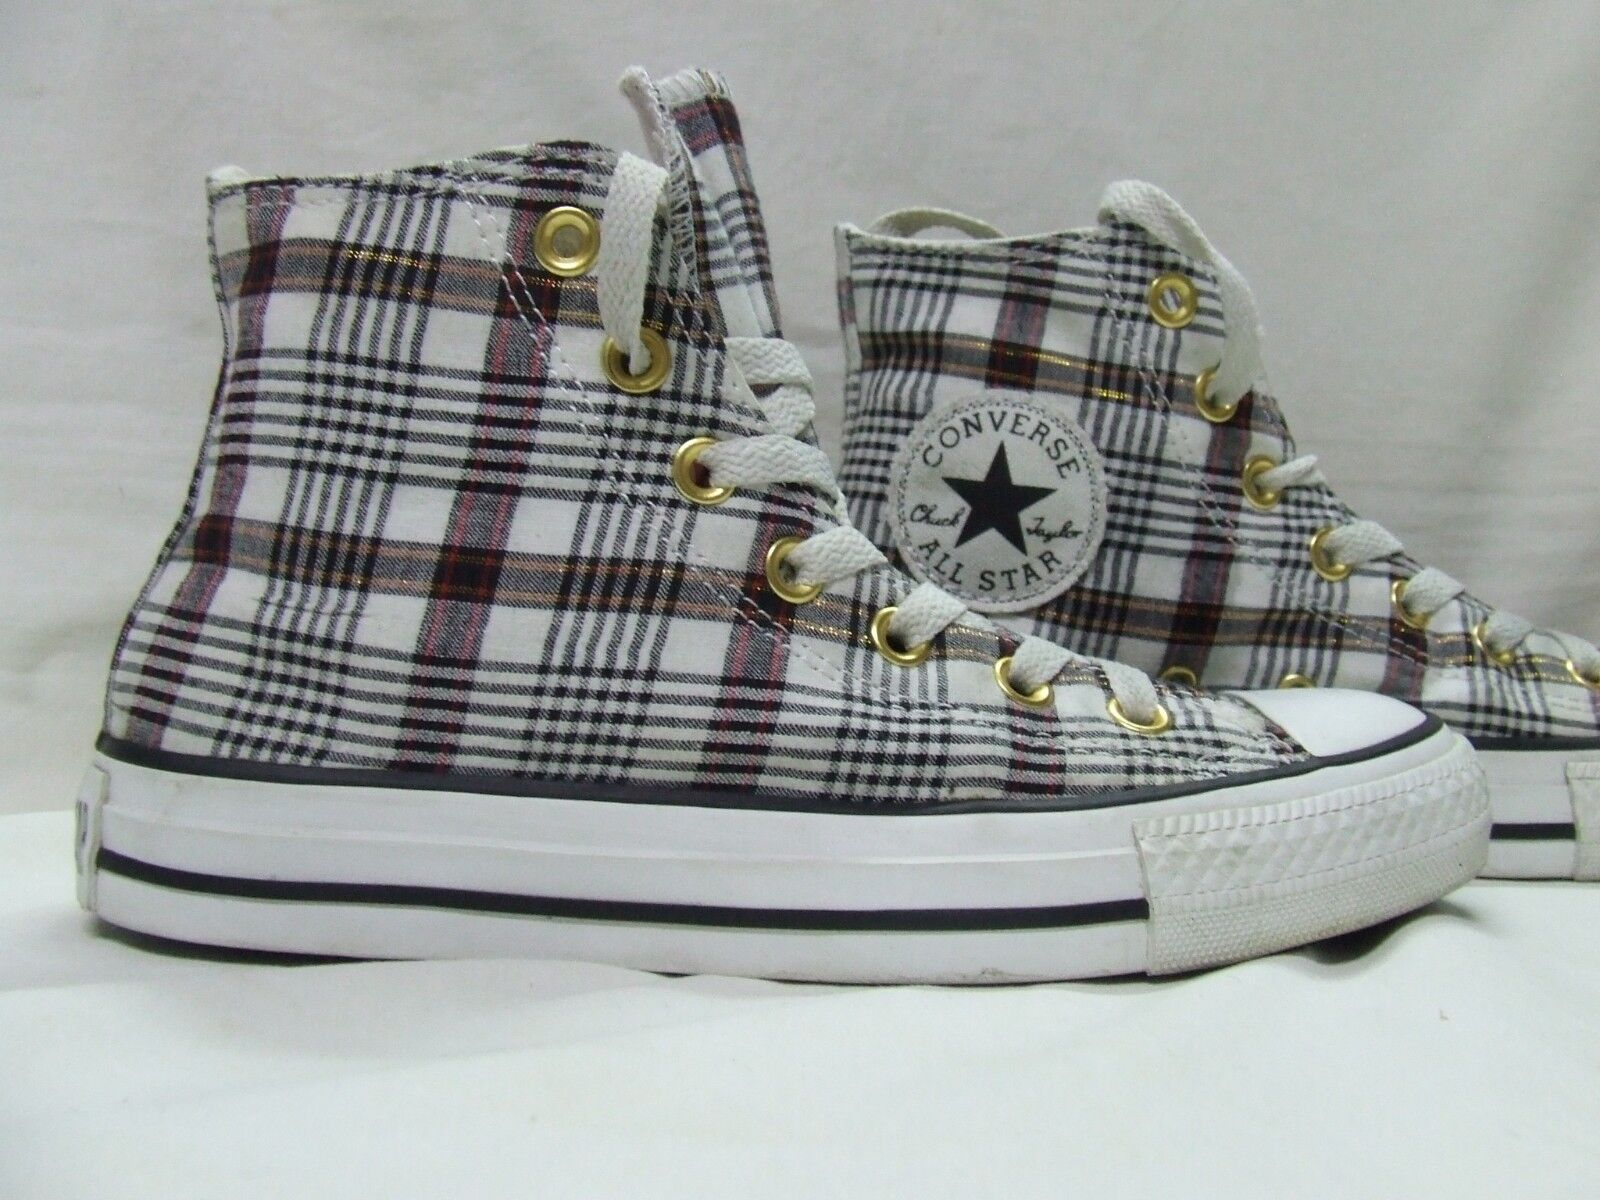 CHAUSSURES taille HOMME FEMME VINTAGE CONVERSE ALL STAR taille CHAUSSURES 4,5 - 37 (082) 5eb781